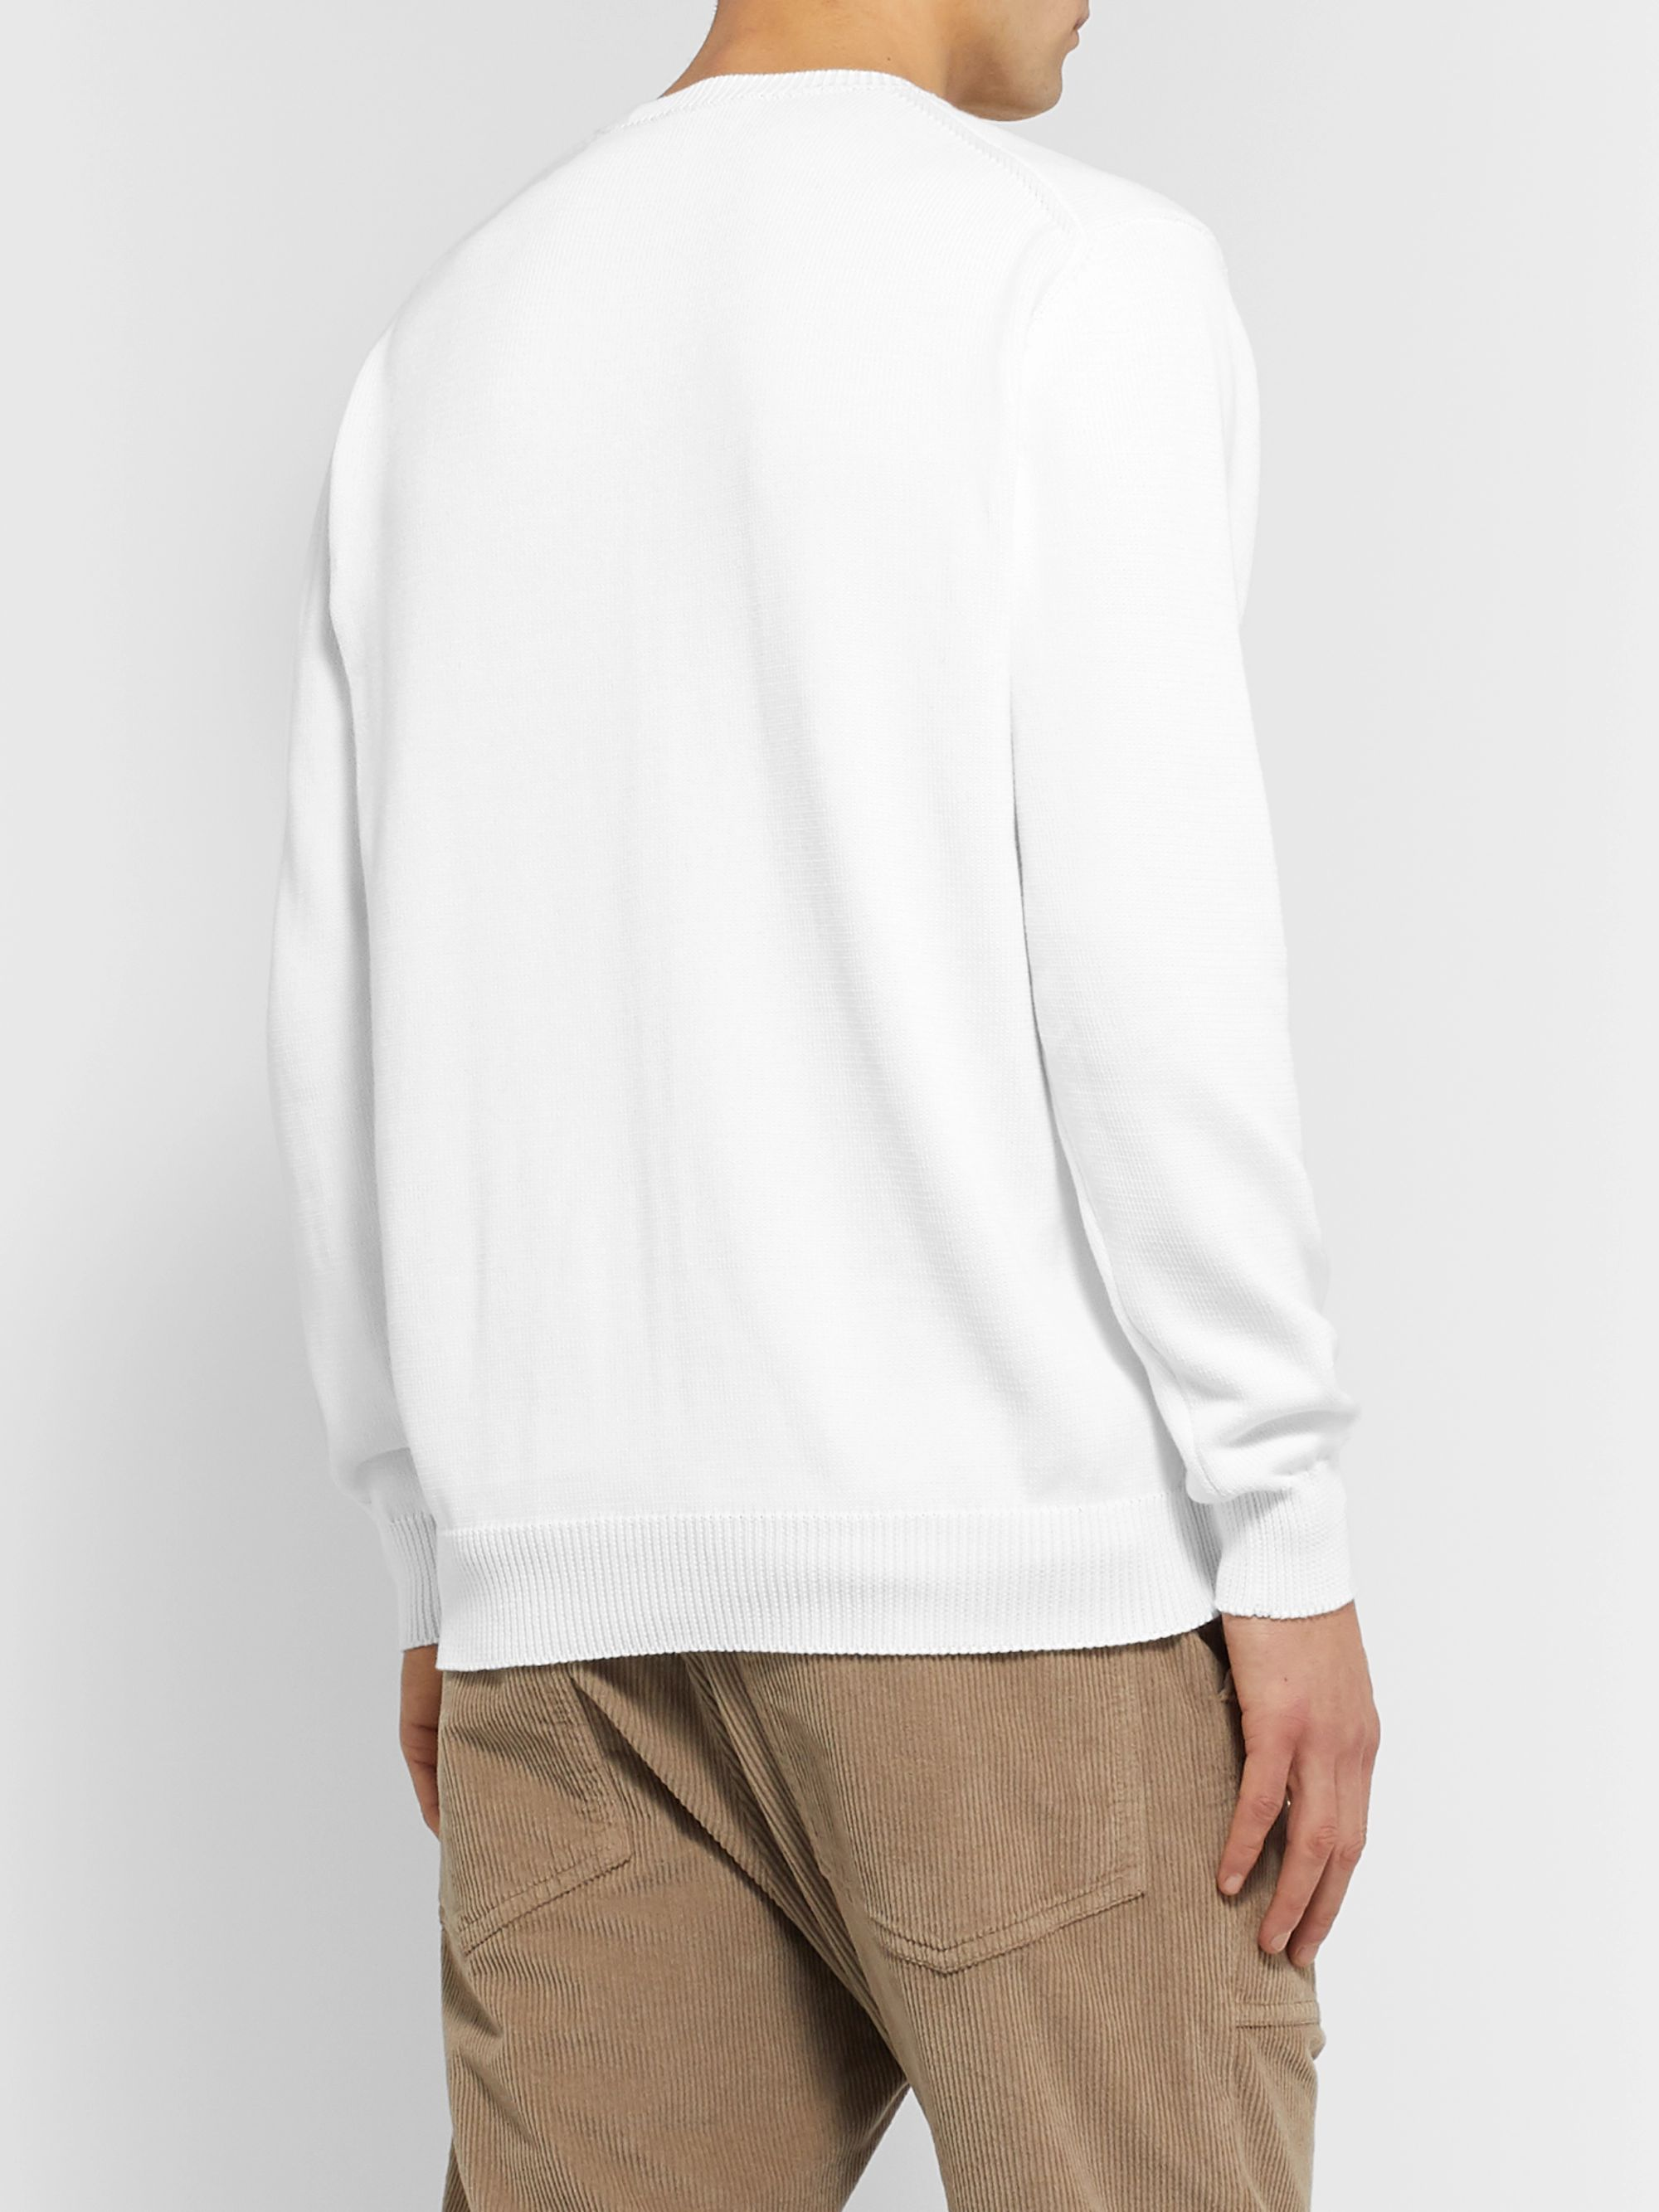 Altea Ribbed Cotton Sweater